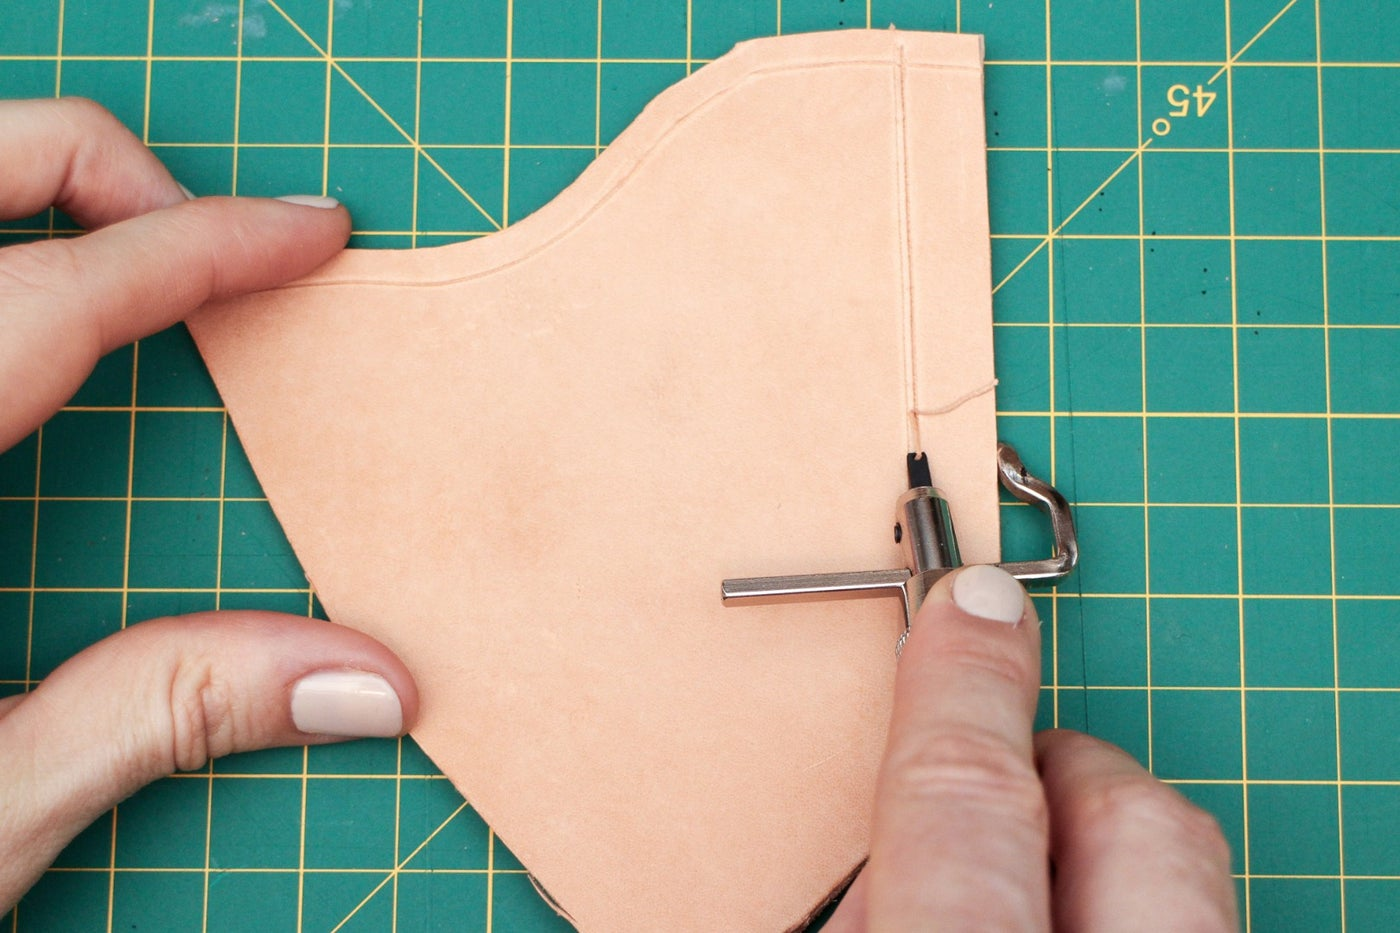 Marking Sewing Lines With a Stitch Groover